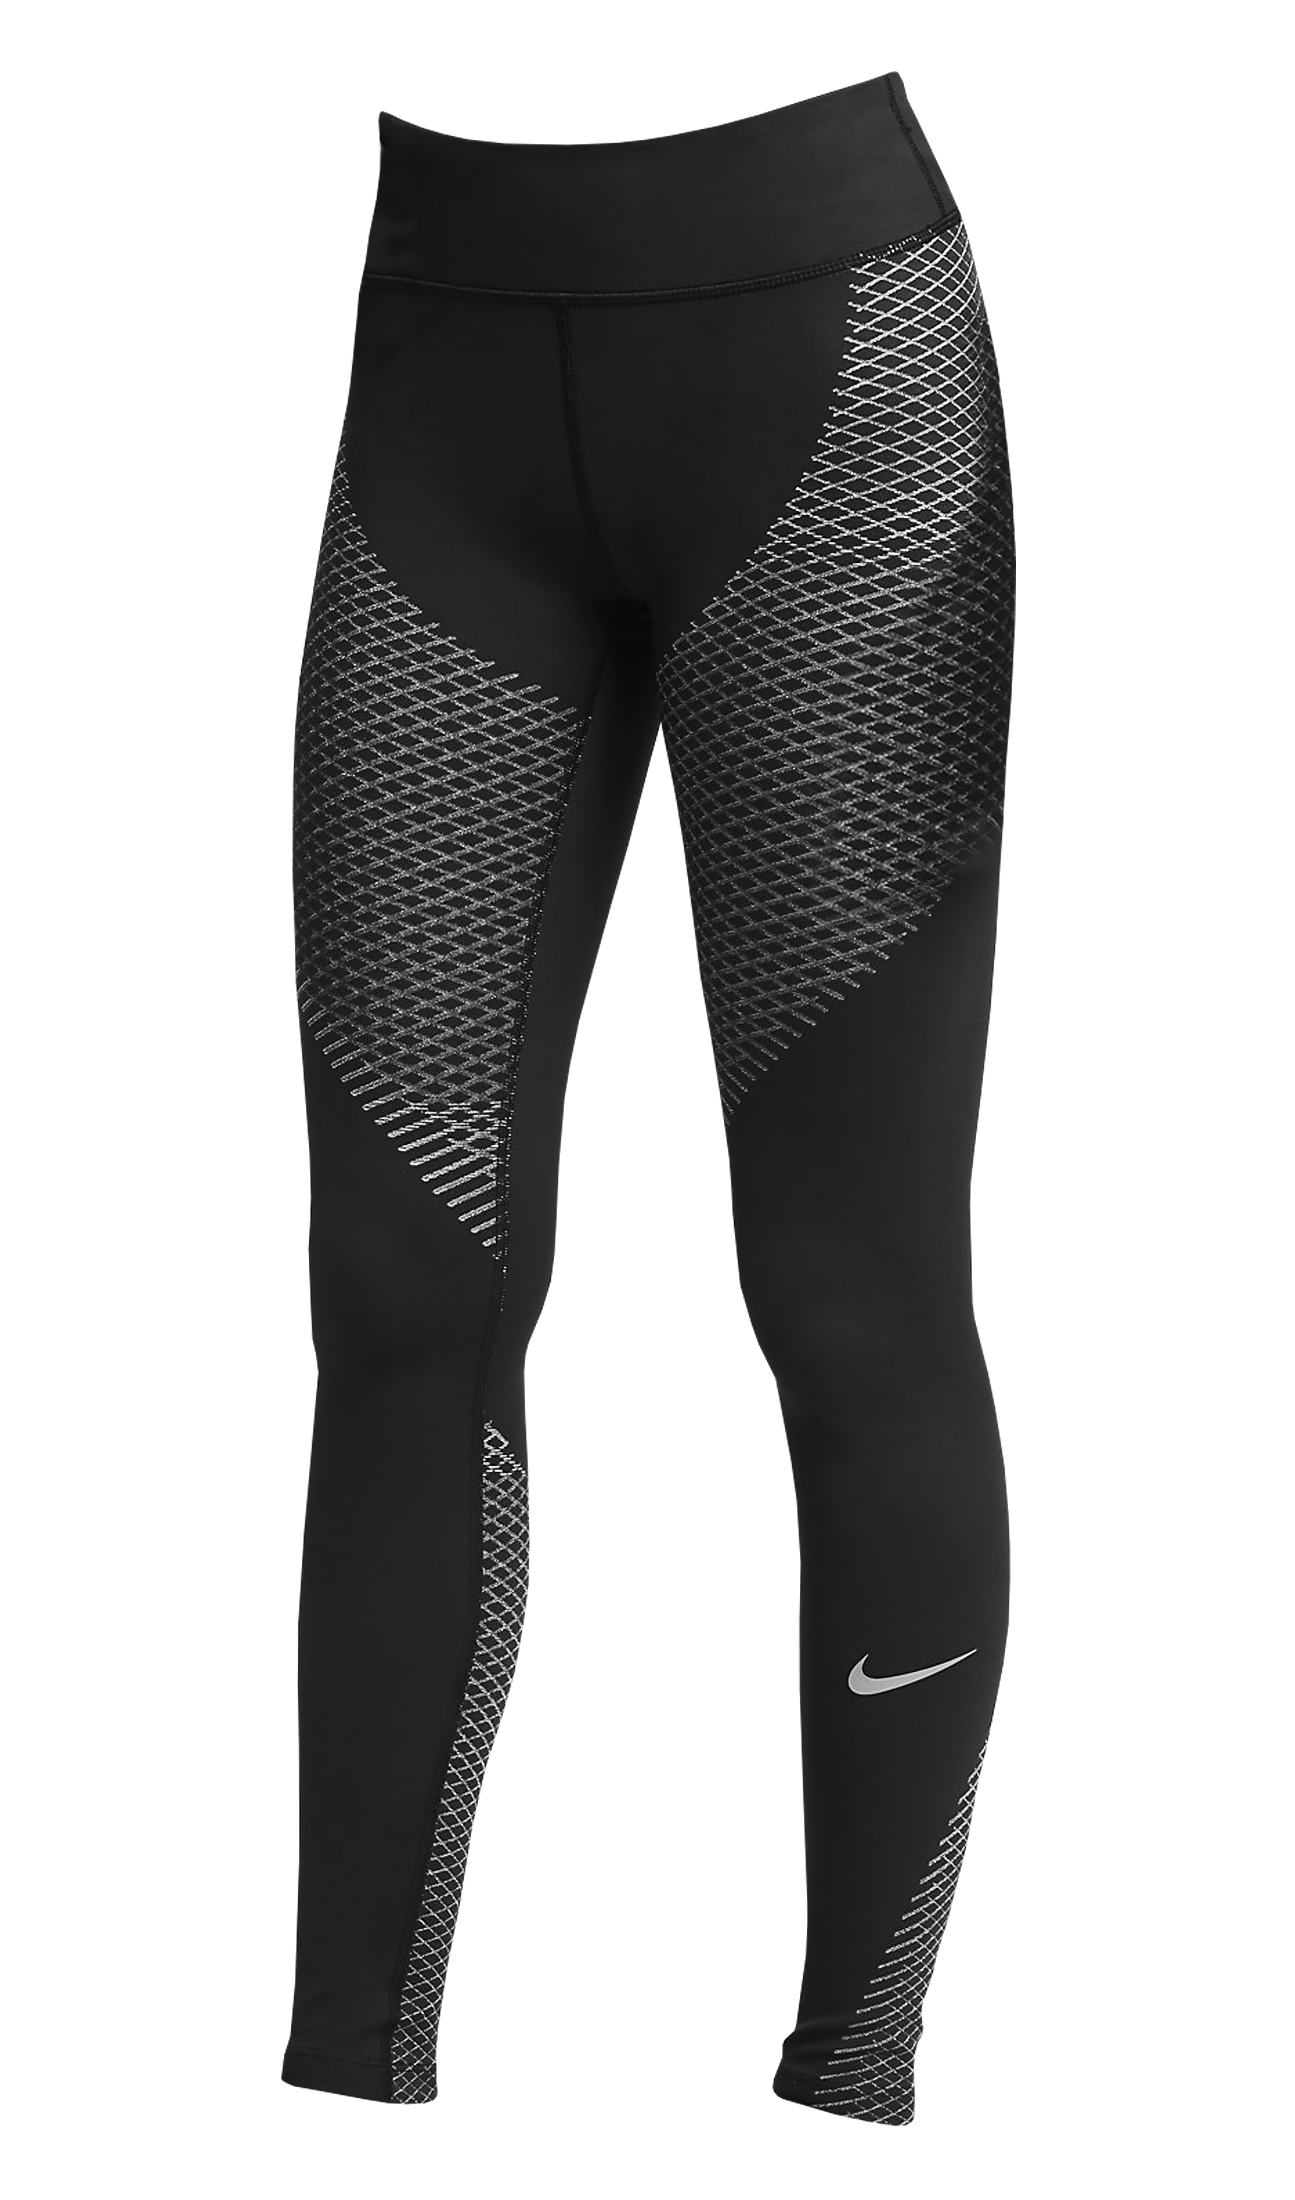 936b0824a9db15 Gear we love -- 10 leggings perfect for unpredictable spring weather